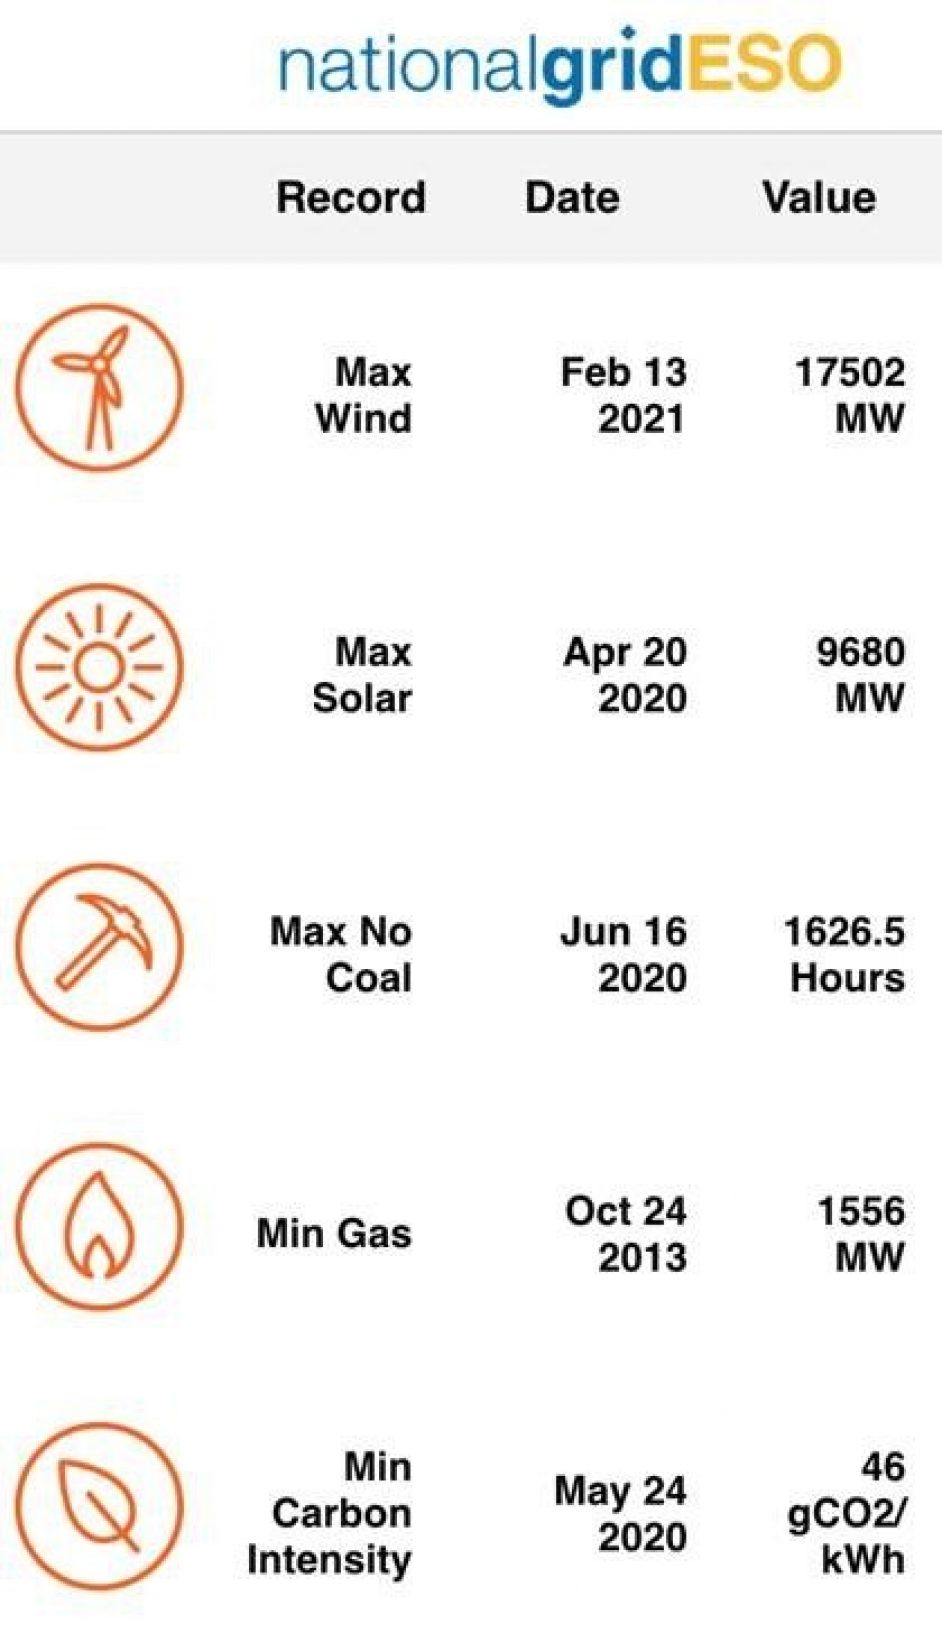 Numerous renewable generation records have been smashed over the past year. Image: National Grid ESO.